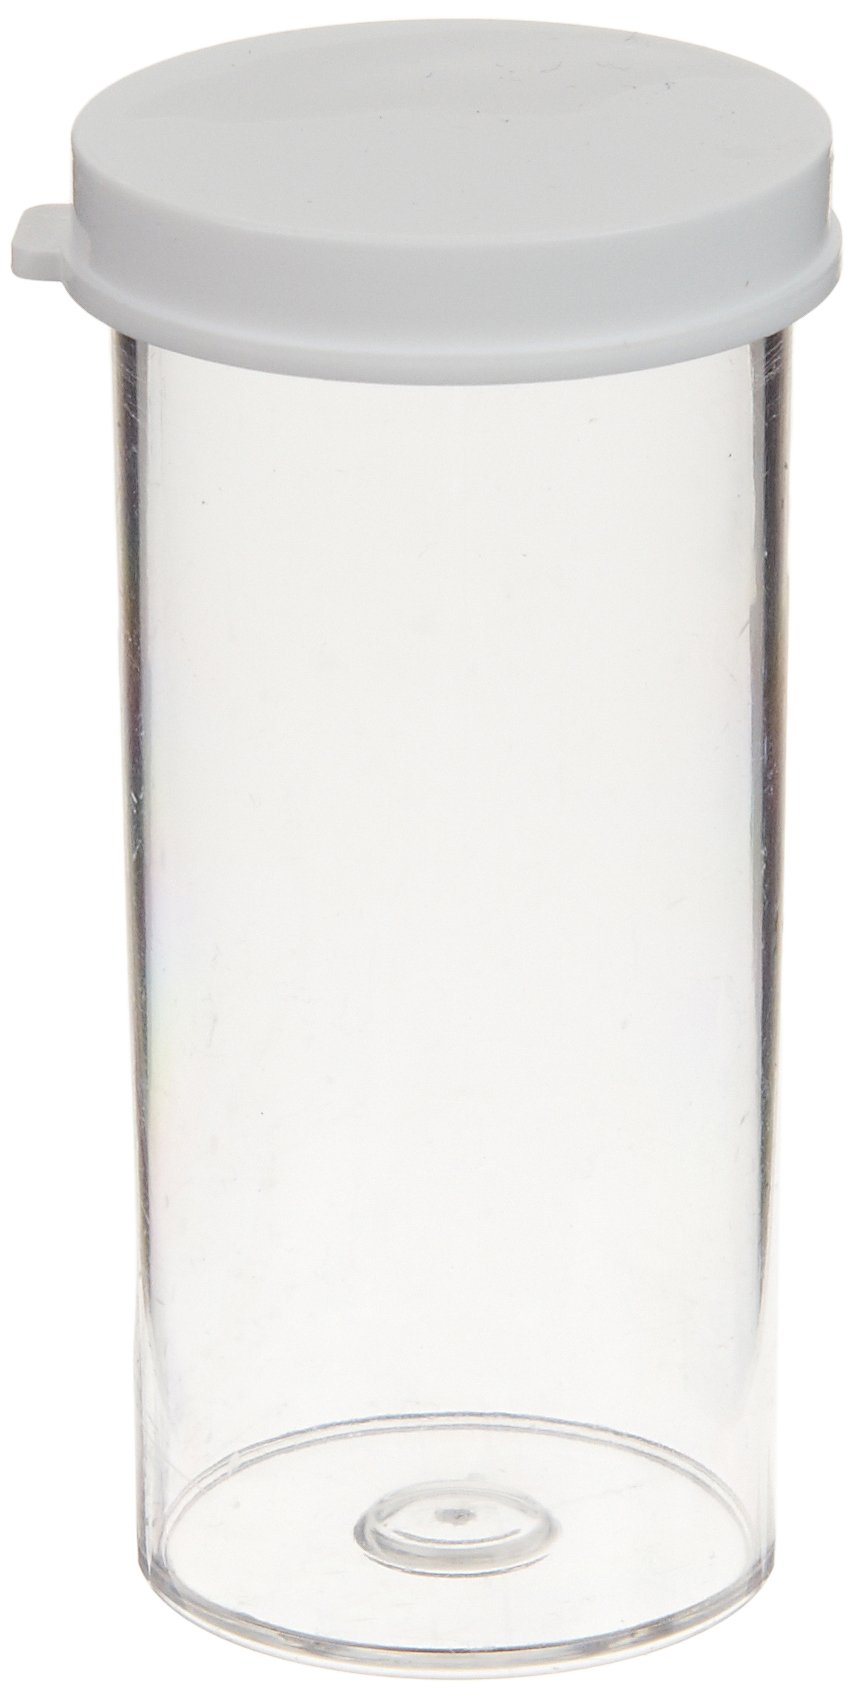 Delta Education 13 Dram Plastic Vial with Lid (Pack of 10)